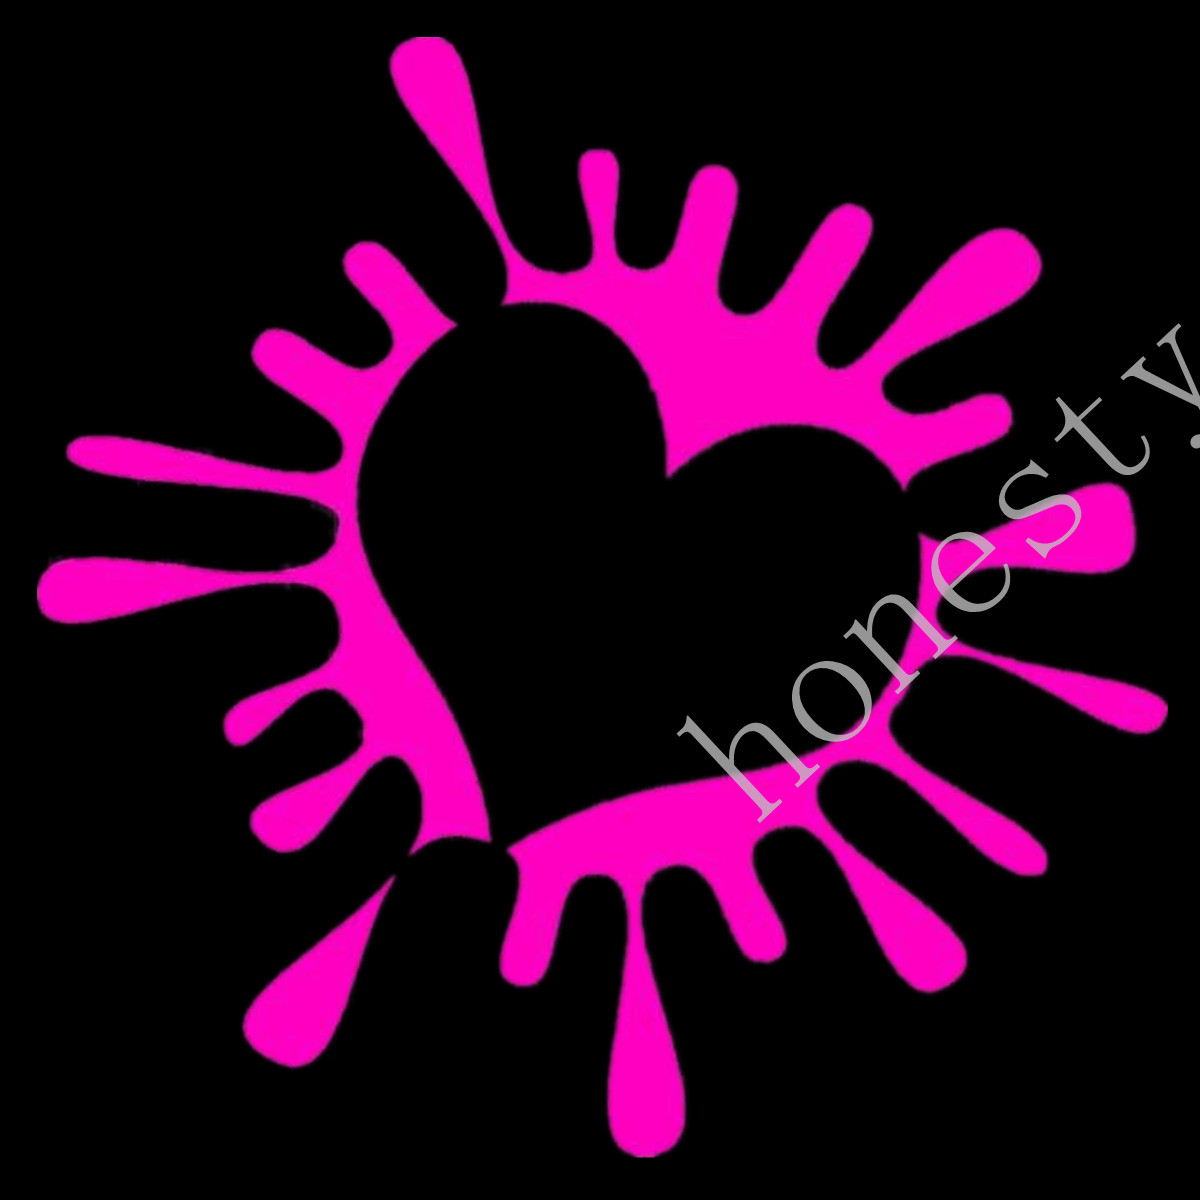 Heart sticker decal paint splat for girls car window wall cute girly love white pink red